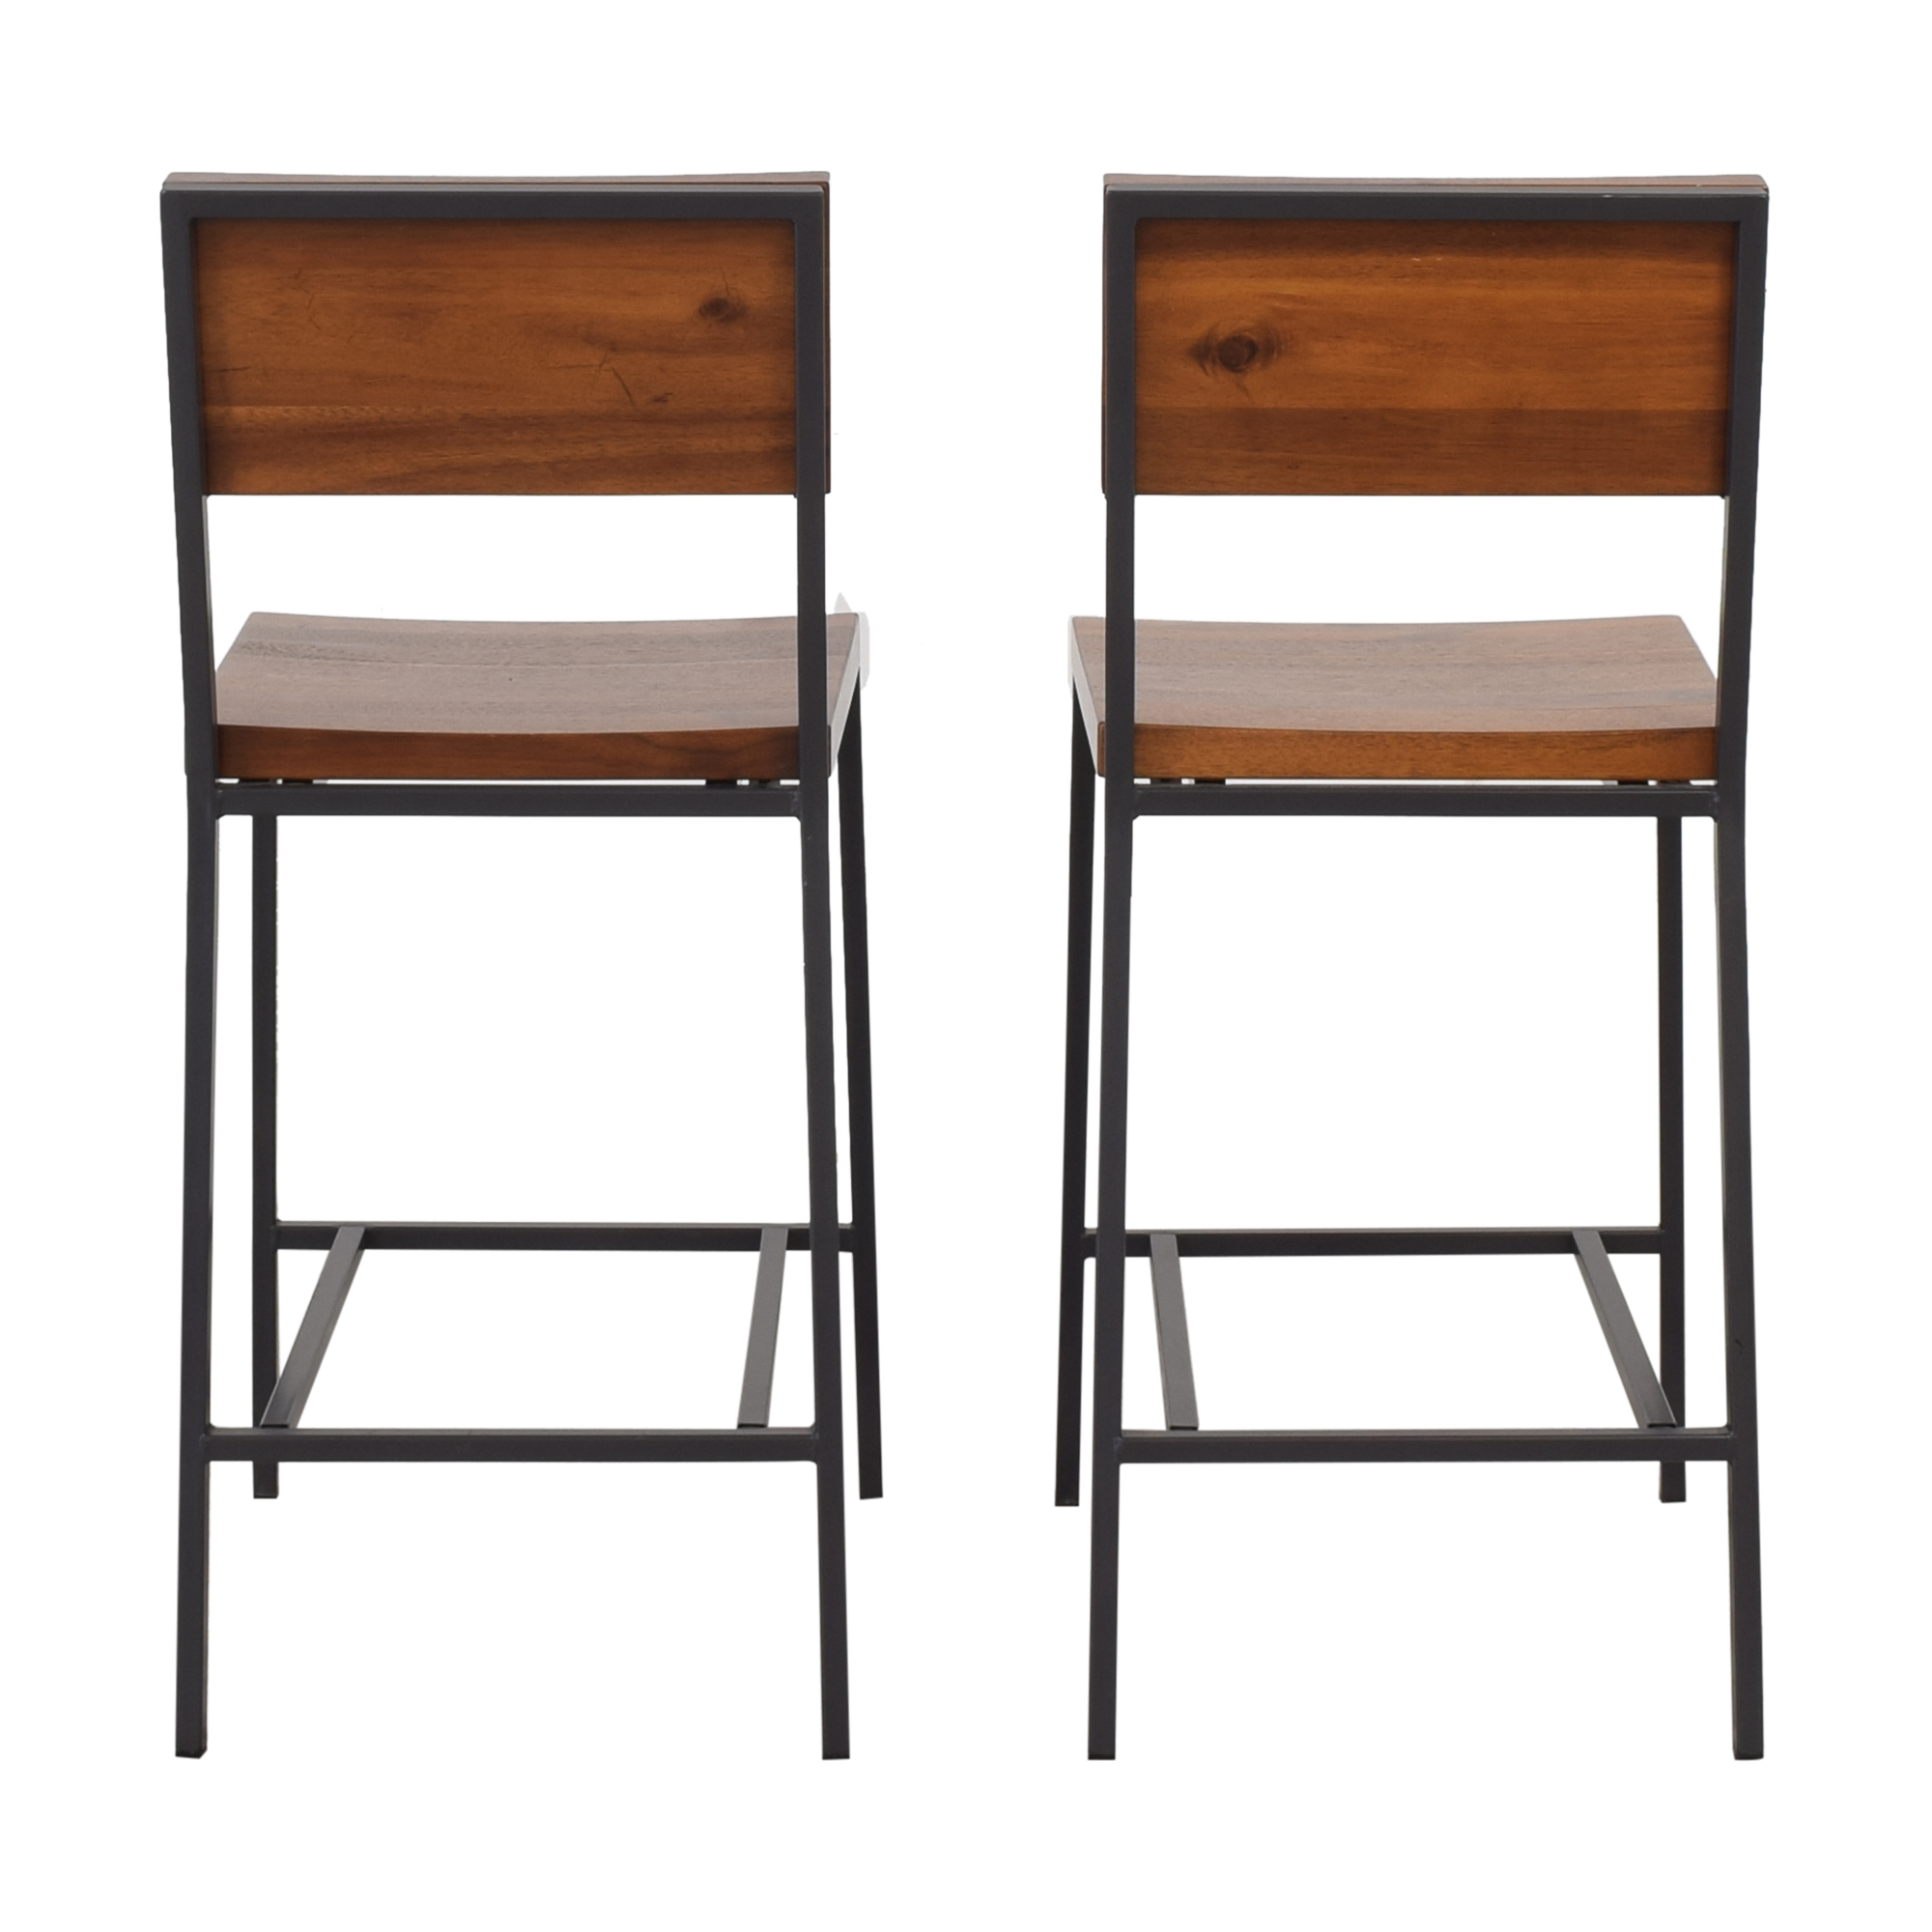 West Elm West Elm Rustic Counter Stools